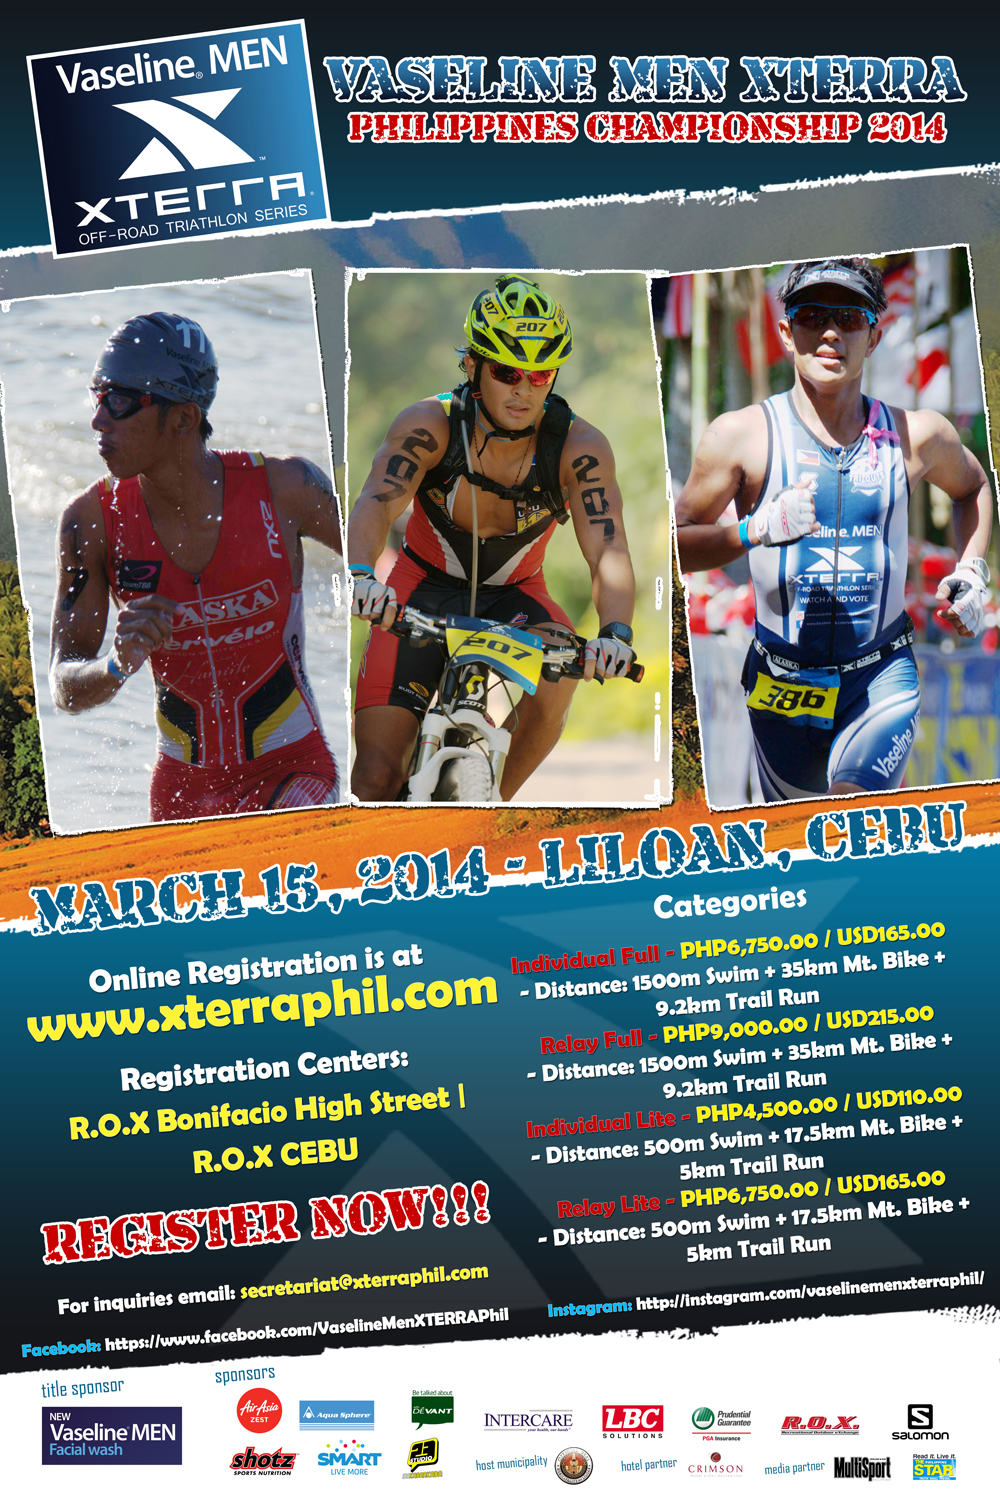 vaseline-men-xterra-off-road-triathlon-2014-poster